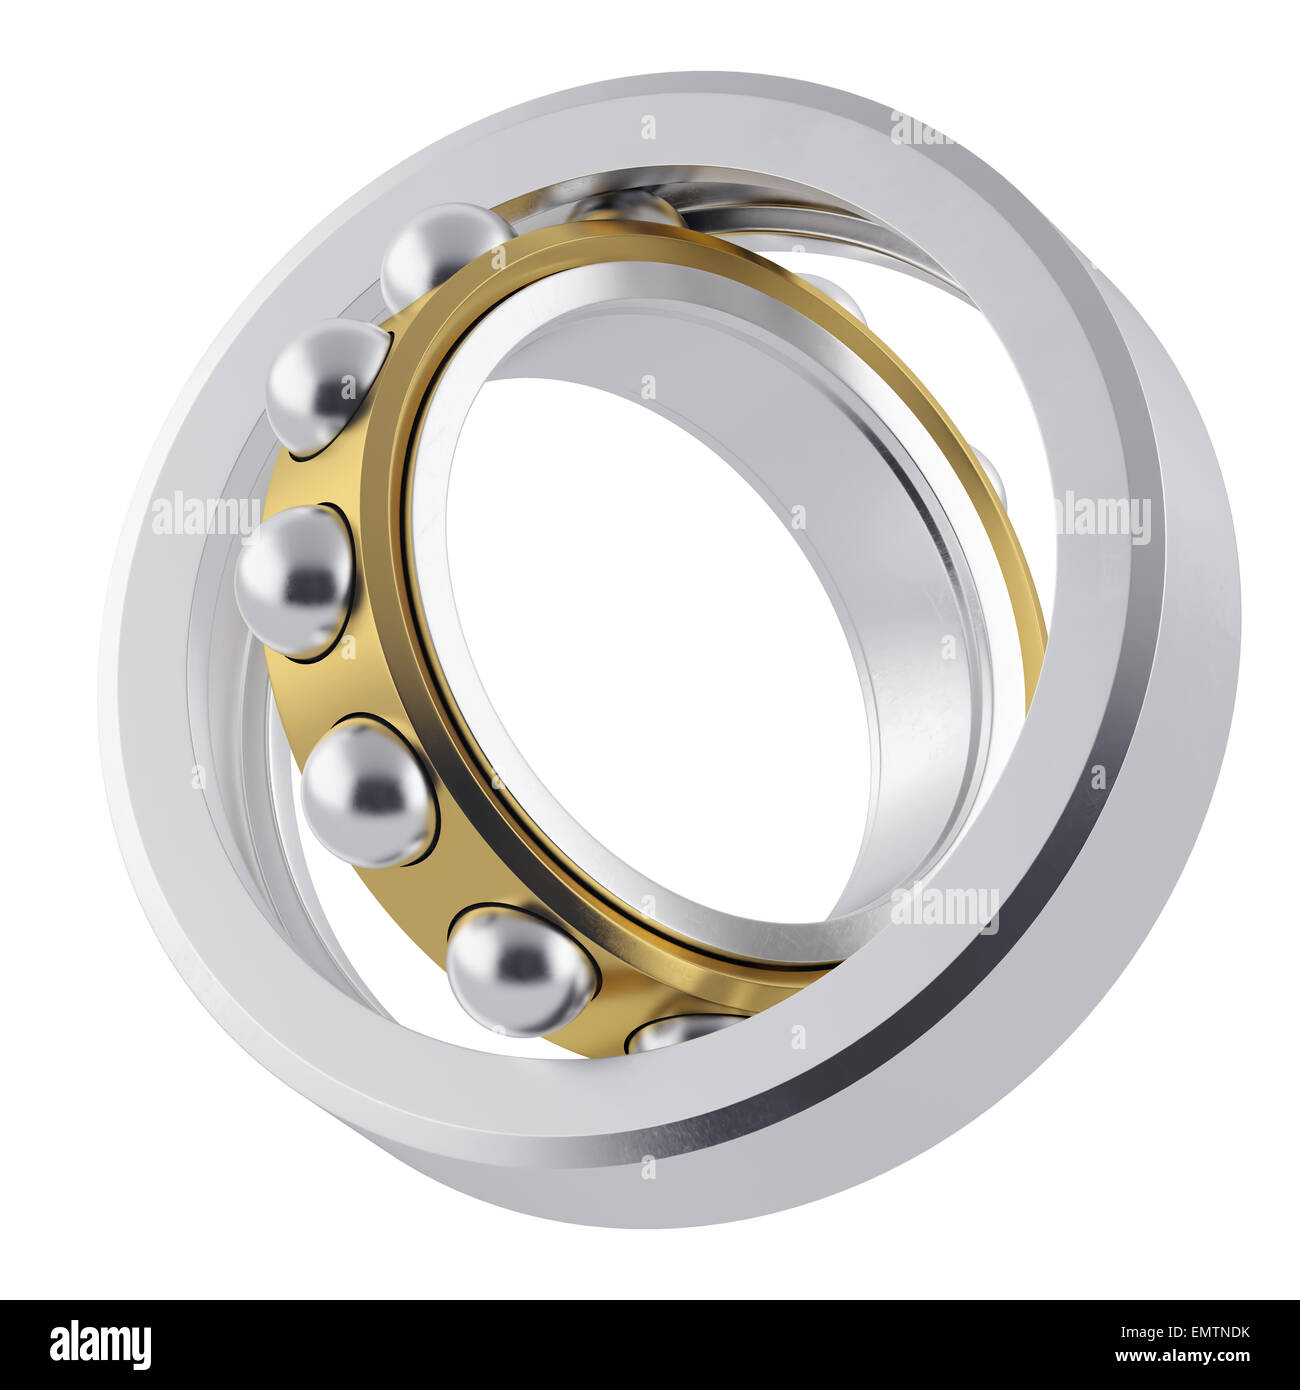 Metal whirling bearing with attrition. Stock Photo